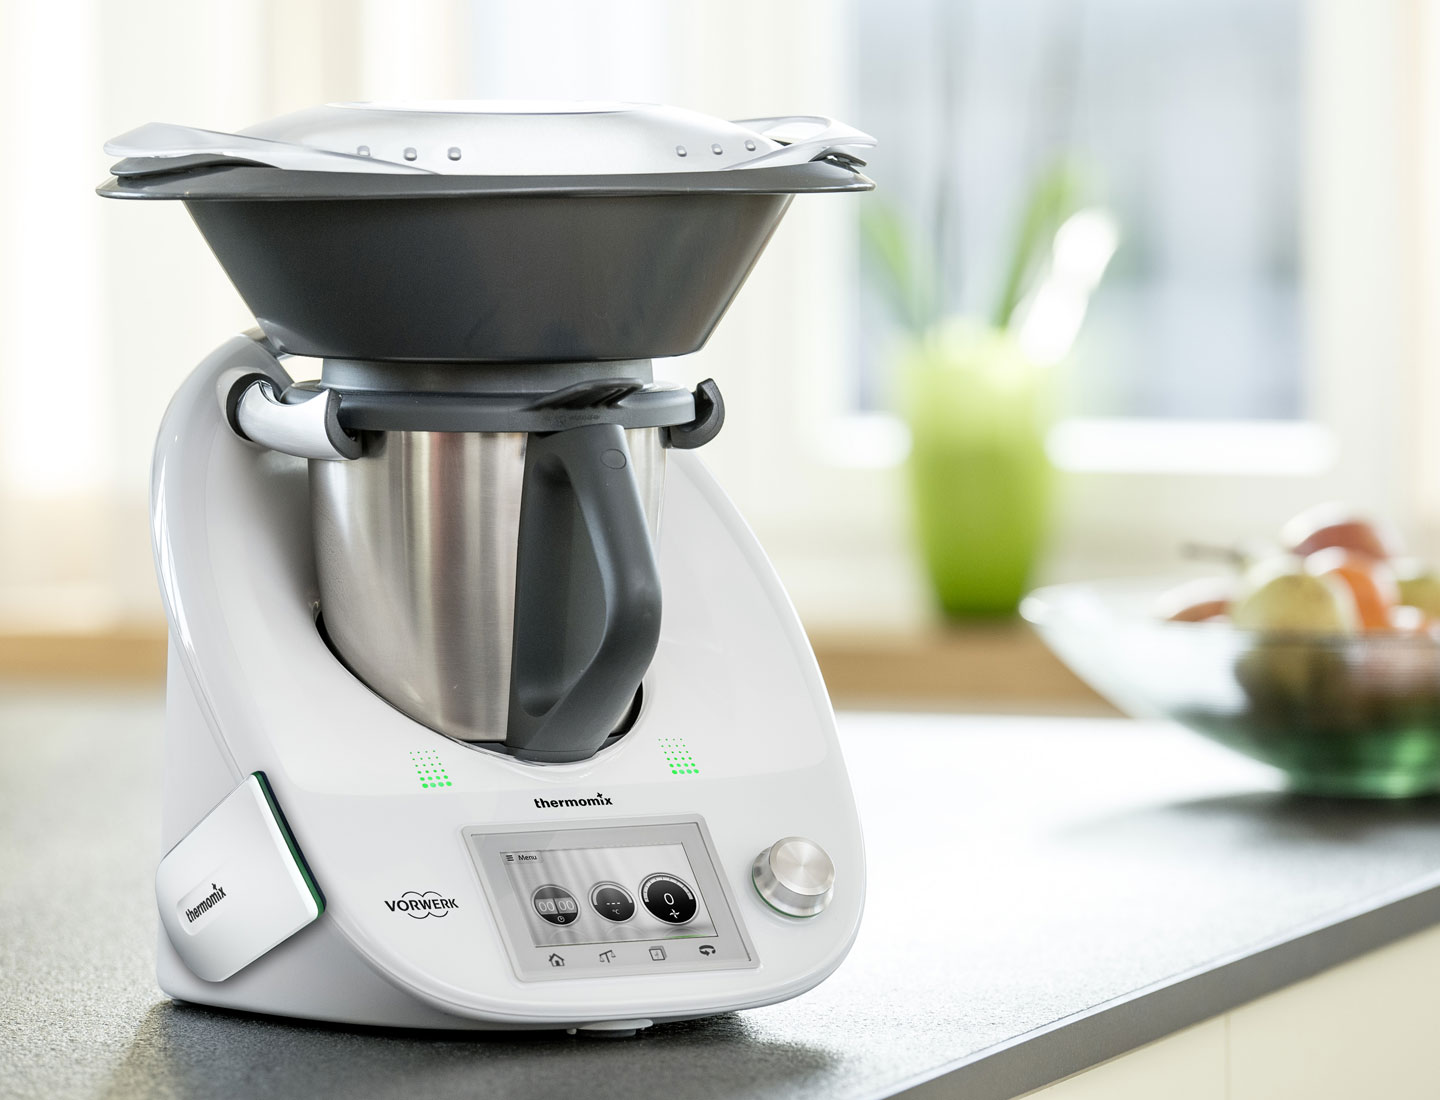 Thermomix with Cook-Key